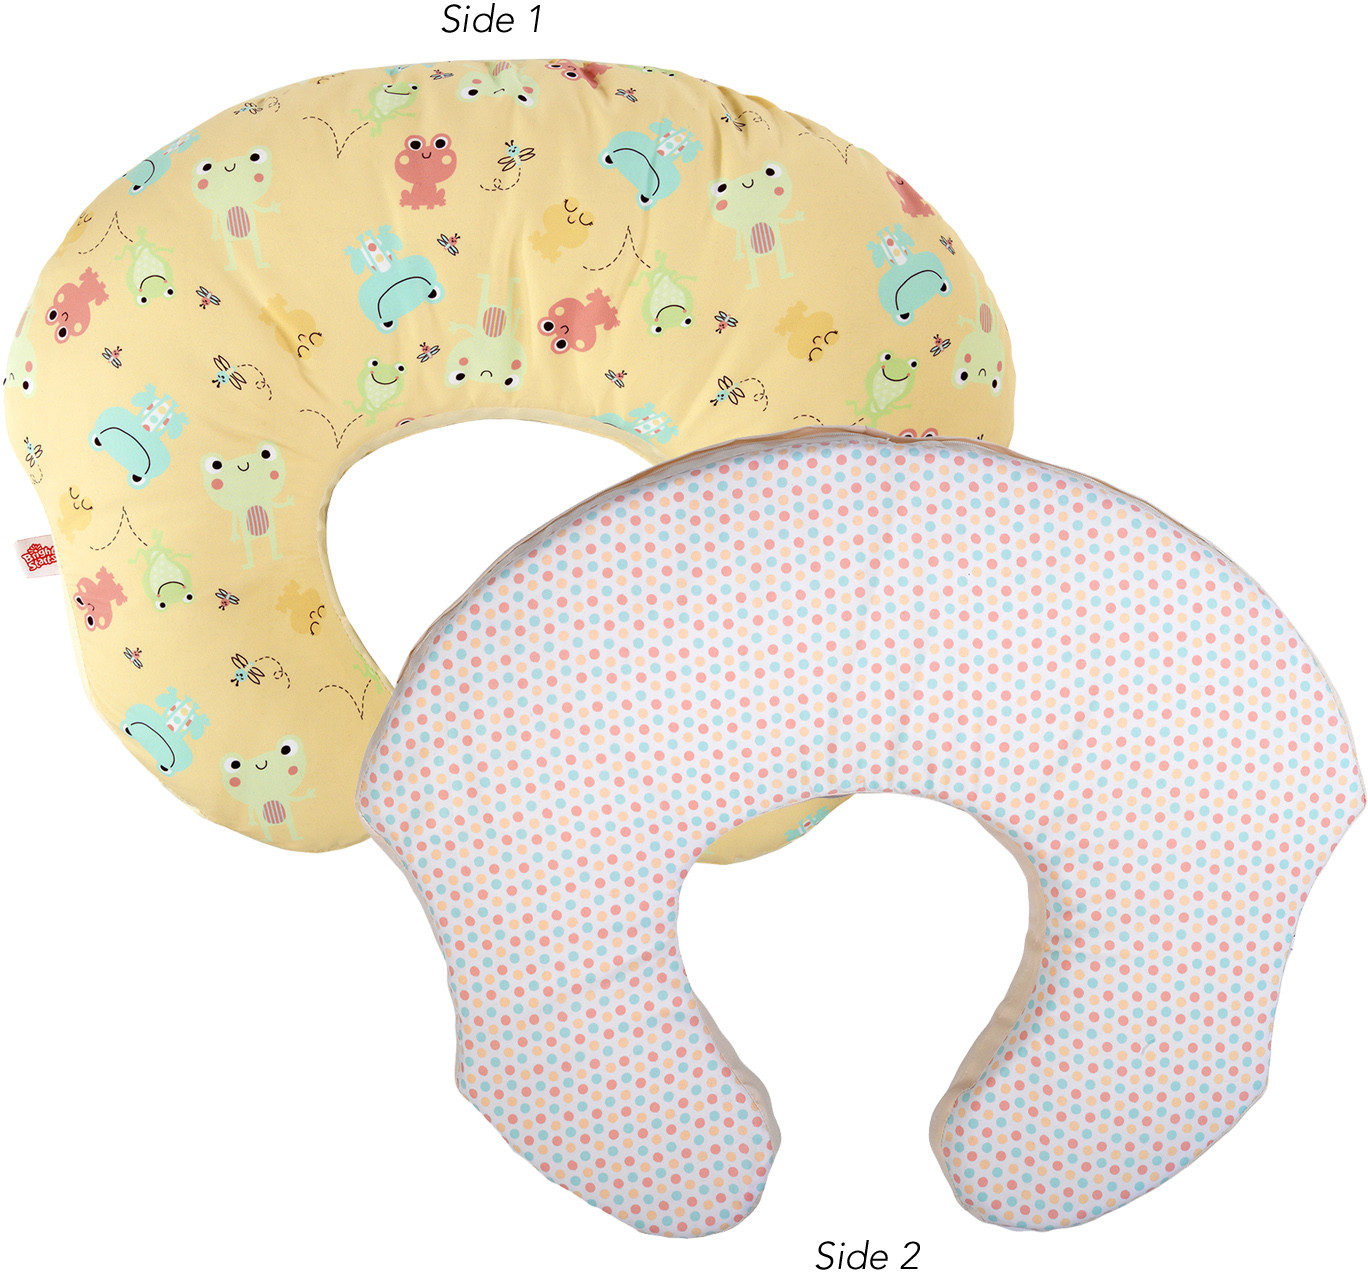 Bright Starts Price List In India Buy Online At Best Comfort Ampamp Harmony Portable Swing Blossomy Blooms Mombo 2 1 Pillow